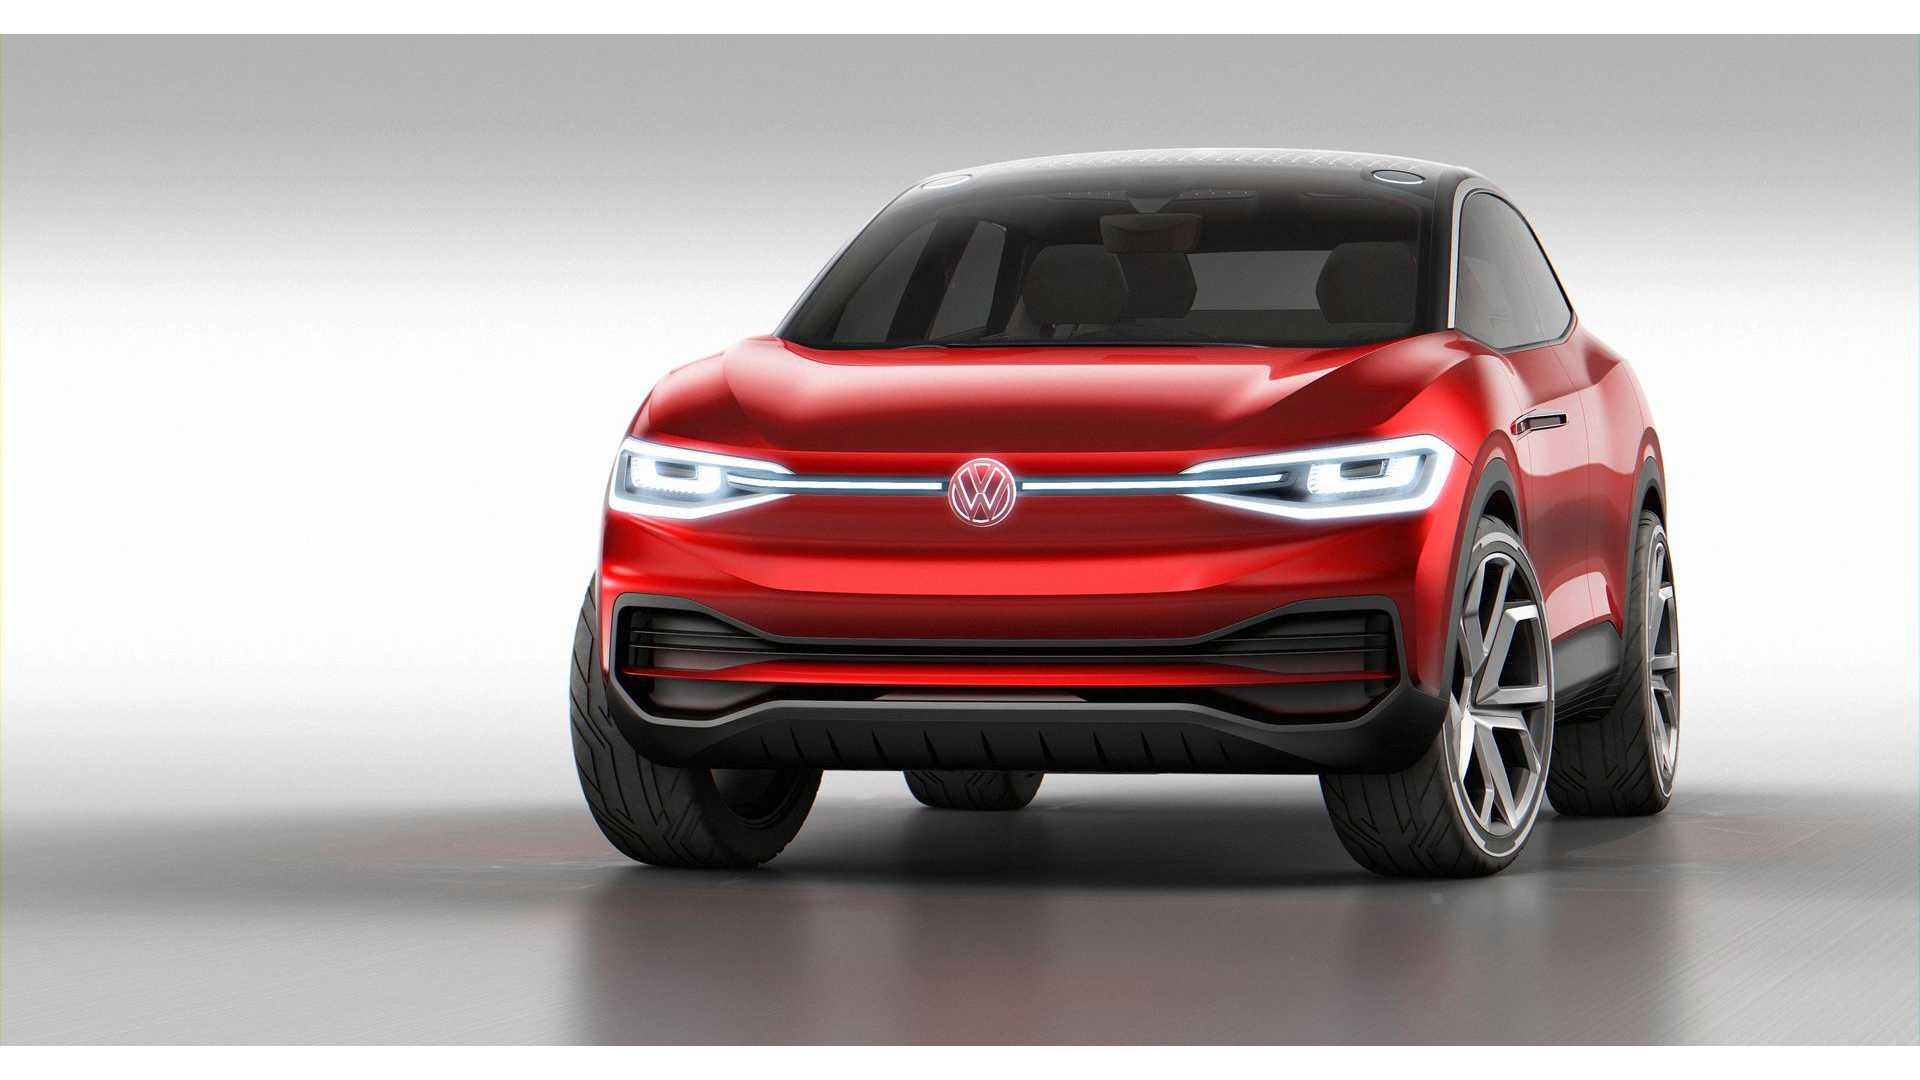 Volkswagen to launch range of souped up GTX ID. electric cars